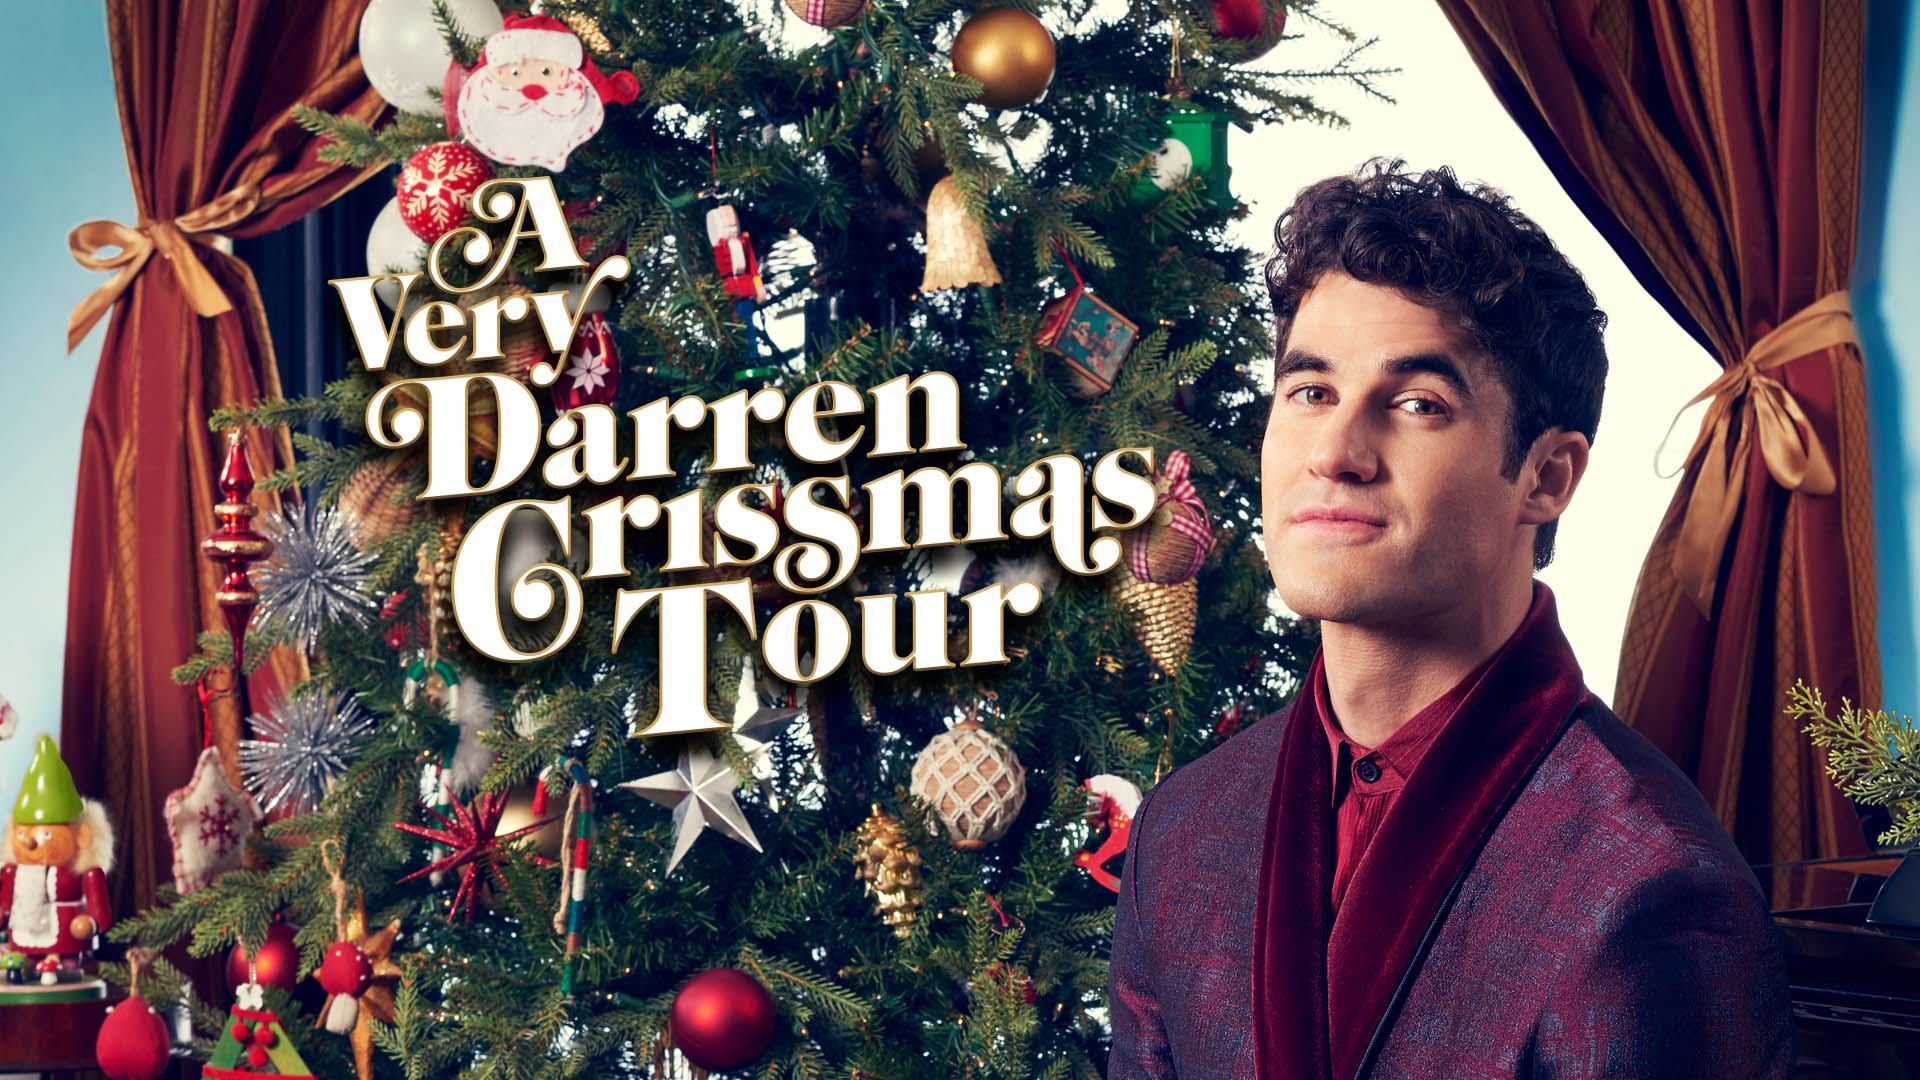 Darren Criss, Glee, capital one hall, capital one center, things to do in DC, Tysons, Crissmas